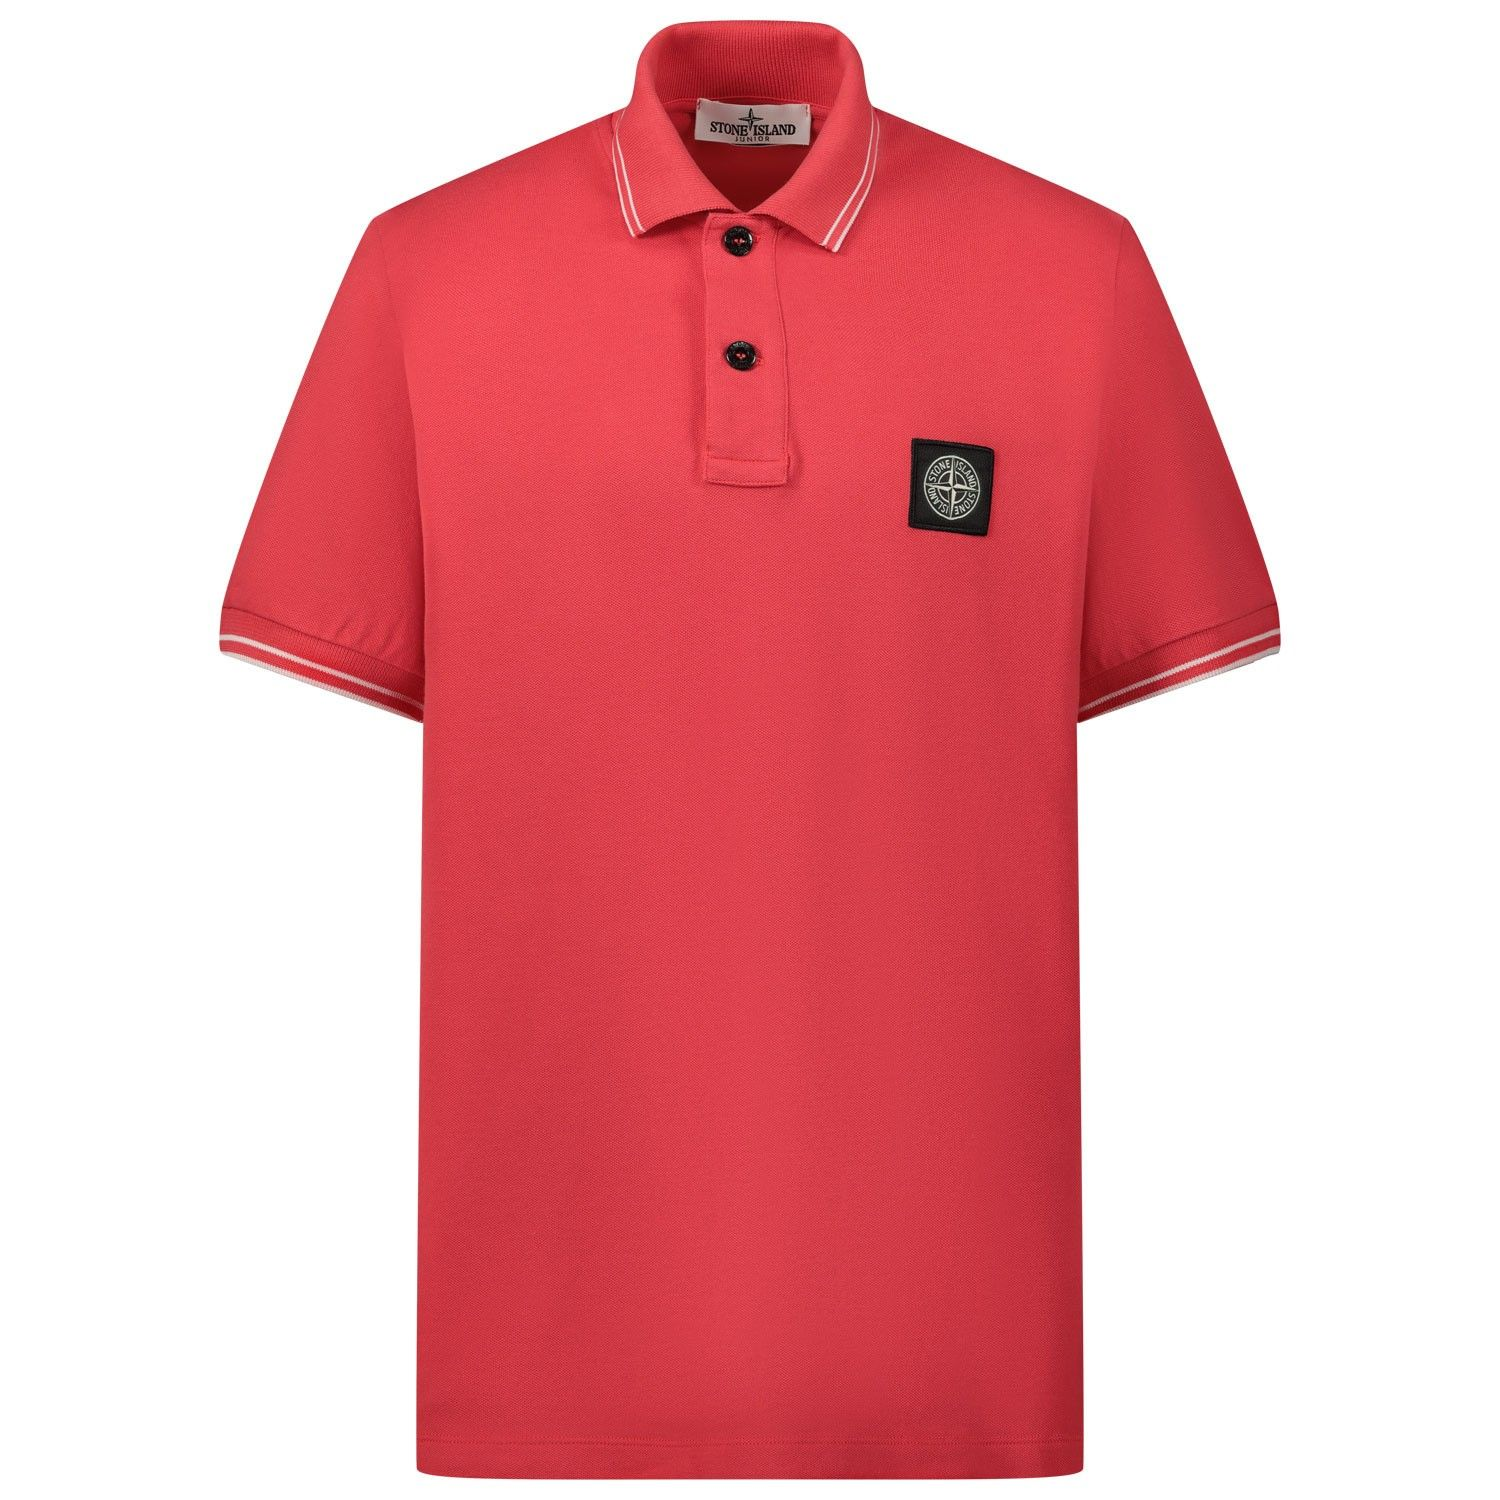 Picture of Stone Island 721621348 kids polo shirt red